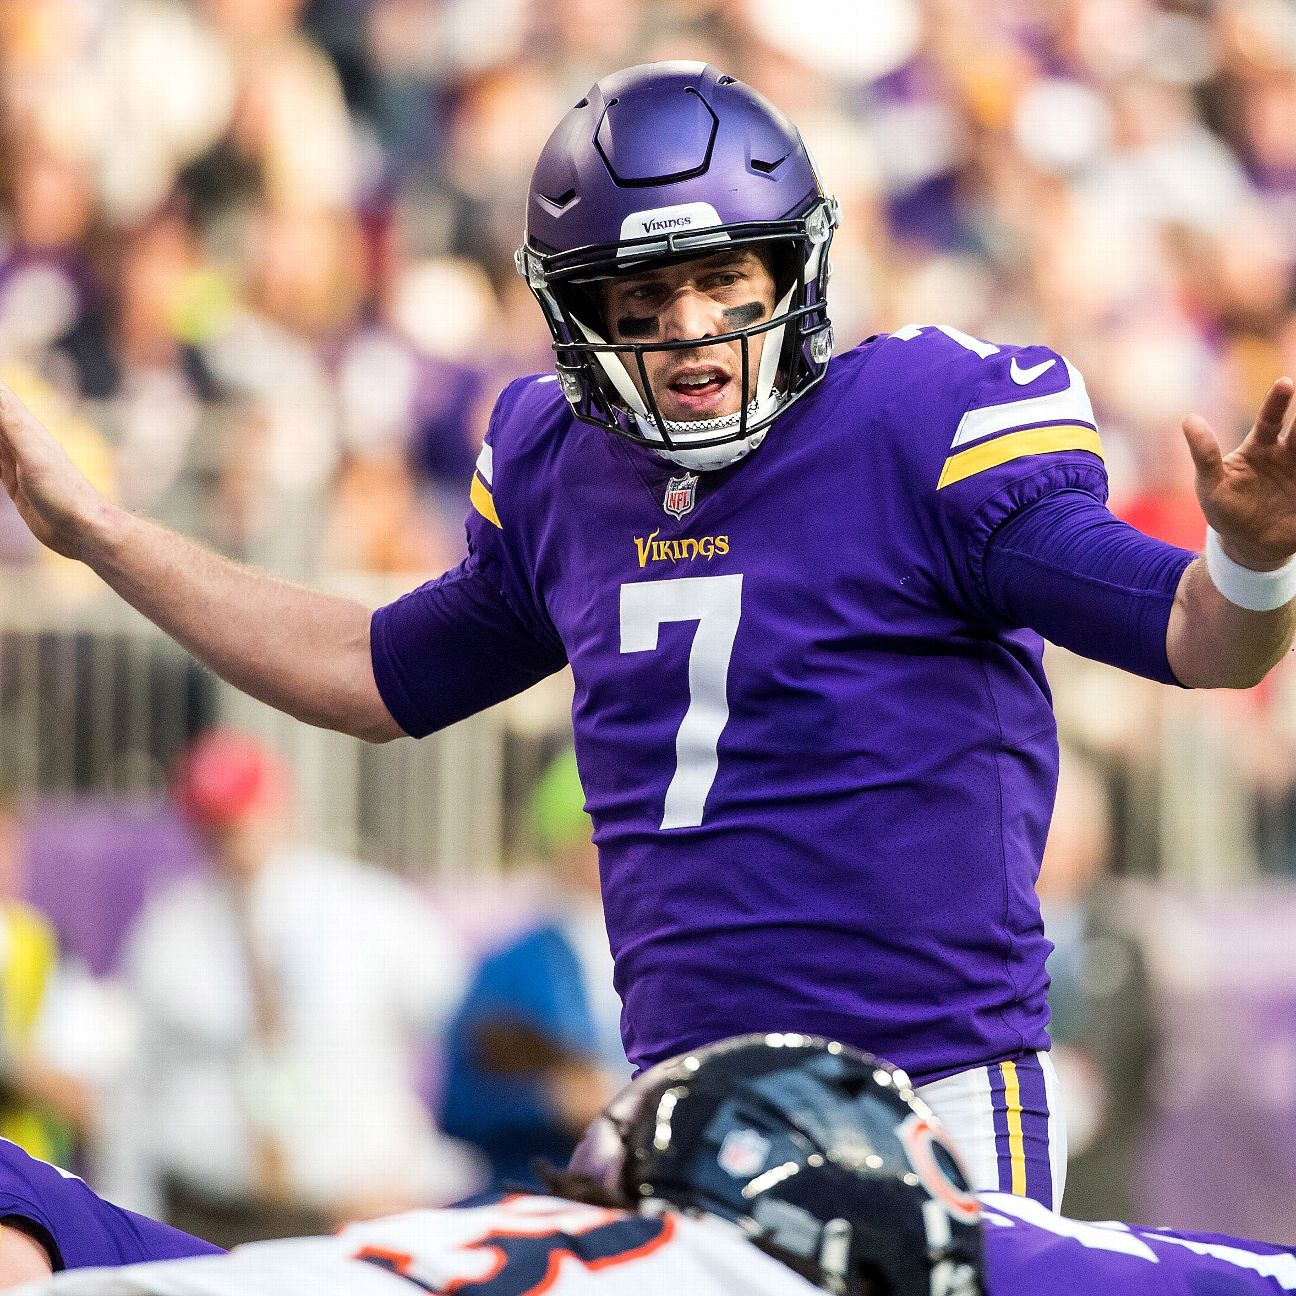 Case Keenum Is Denver's QB For Now, But Future Remains